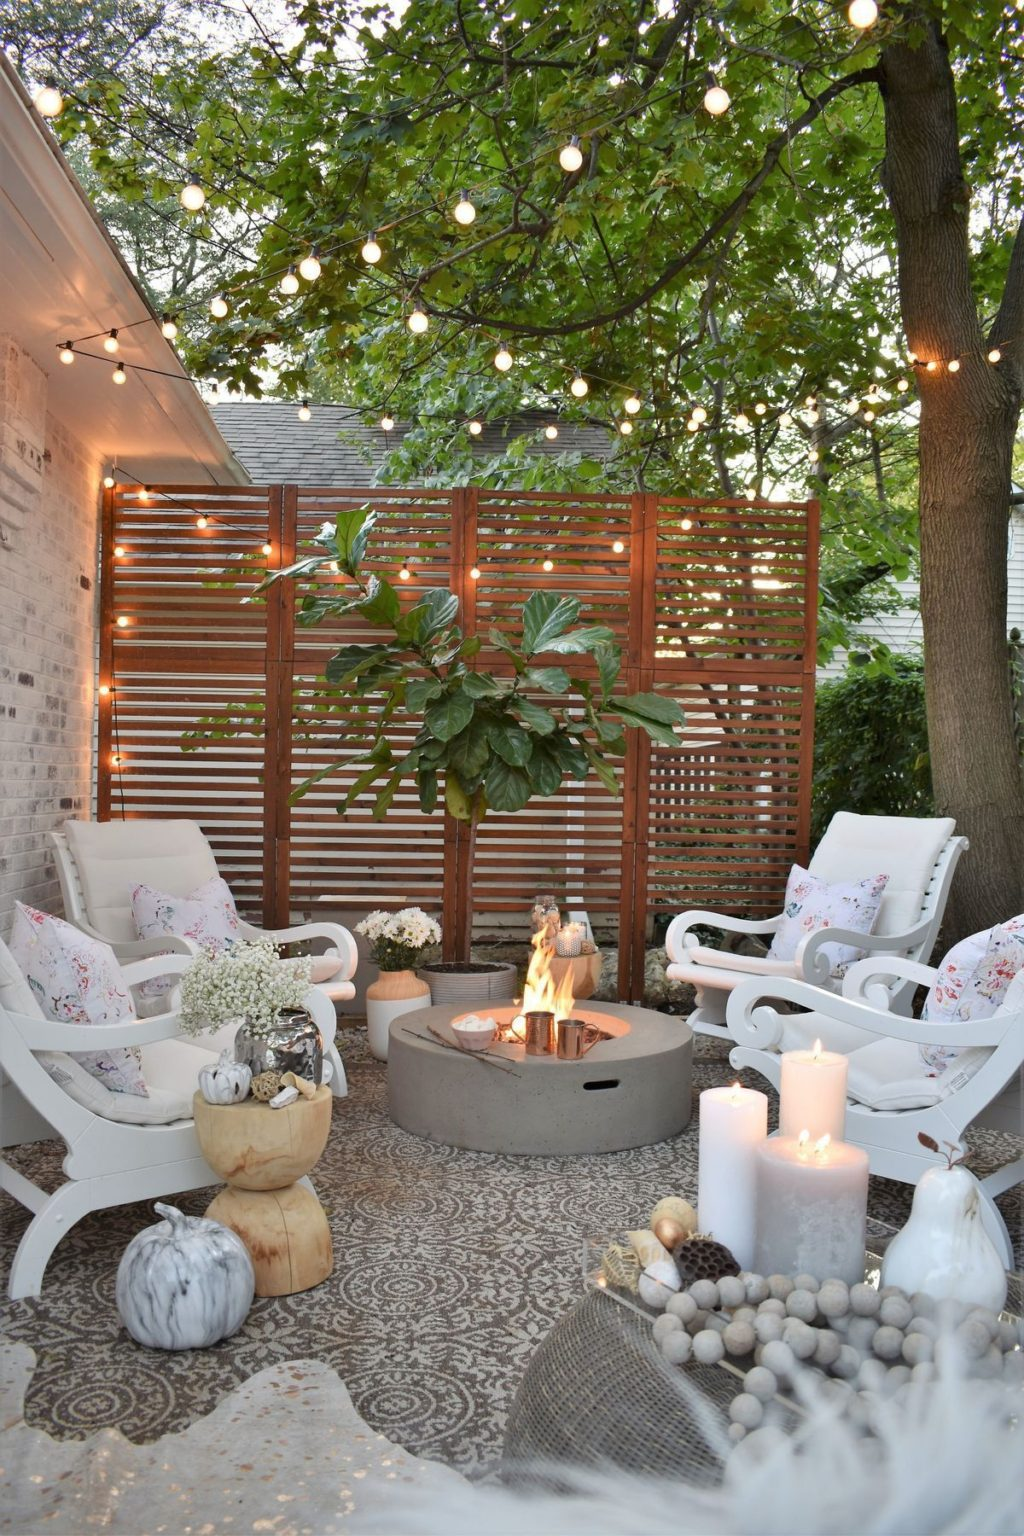 fence.-2-1024x1536 100+ Surprising Garden Design Ideas You Should Not Miss in 2021